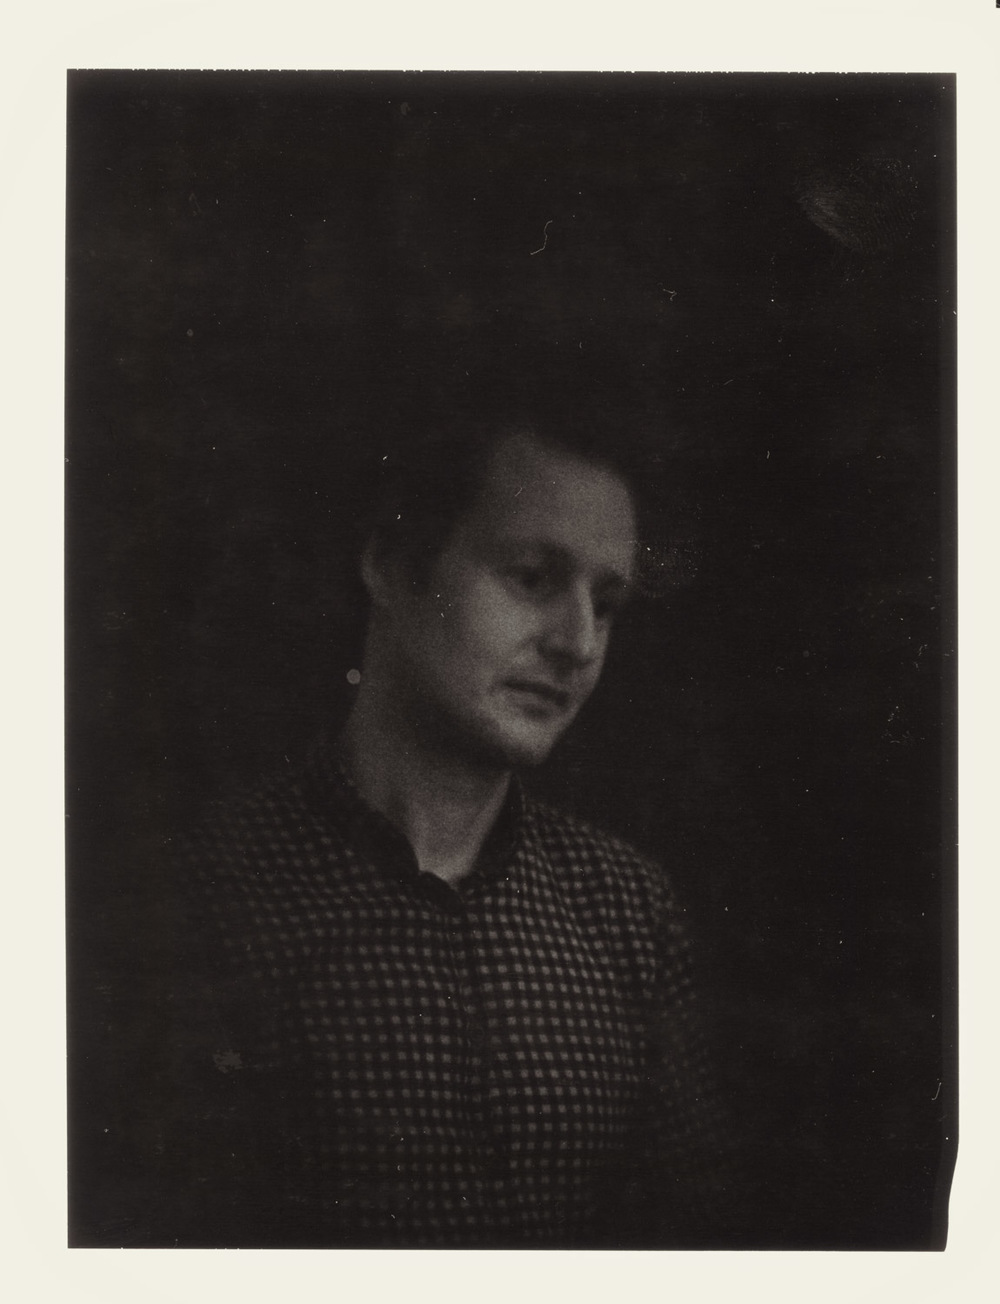 Lars on expired Polaroid on Sinar w. old Petzval